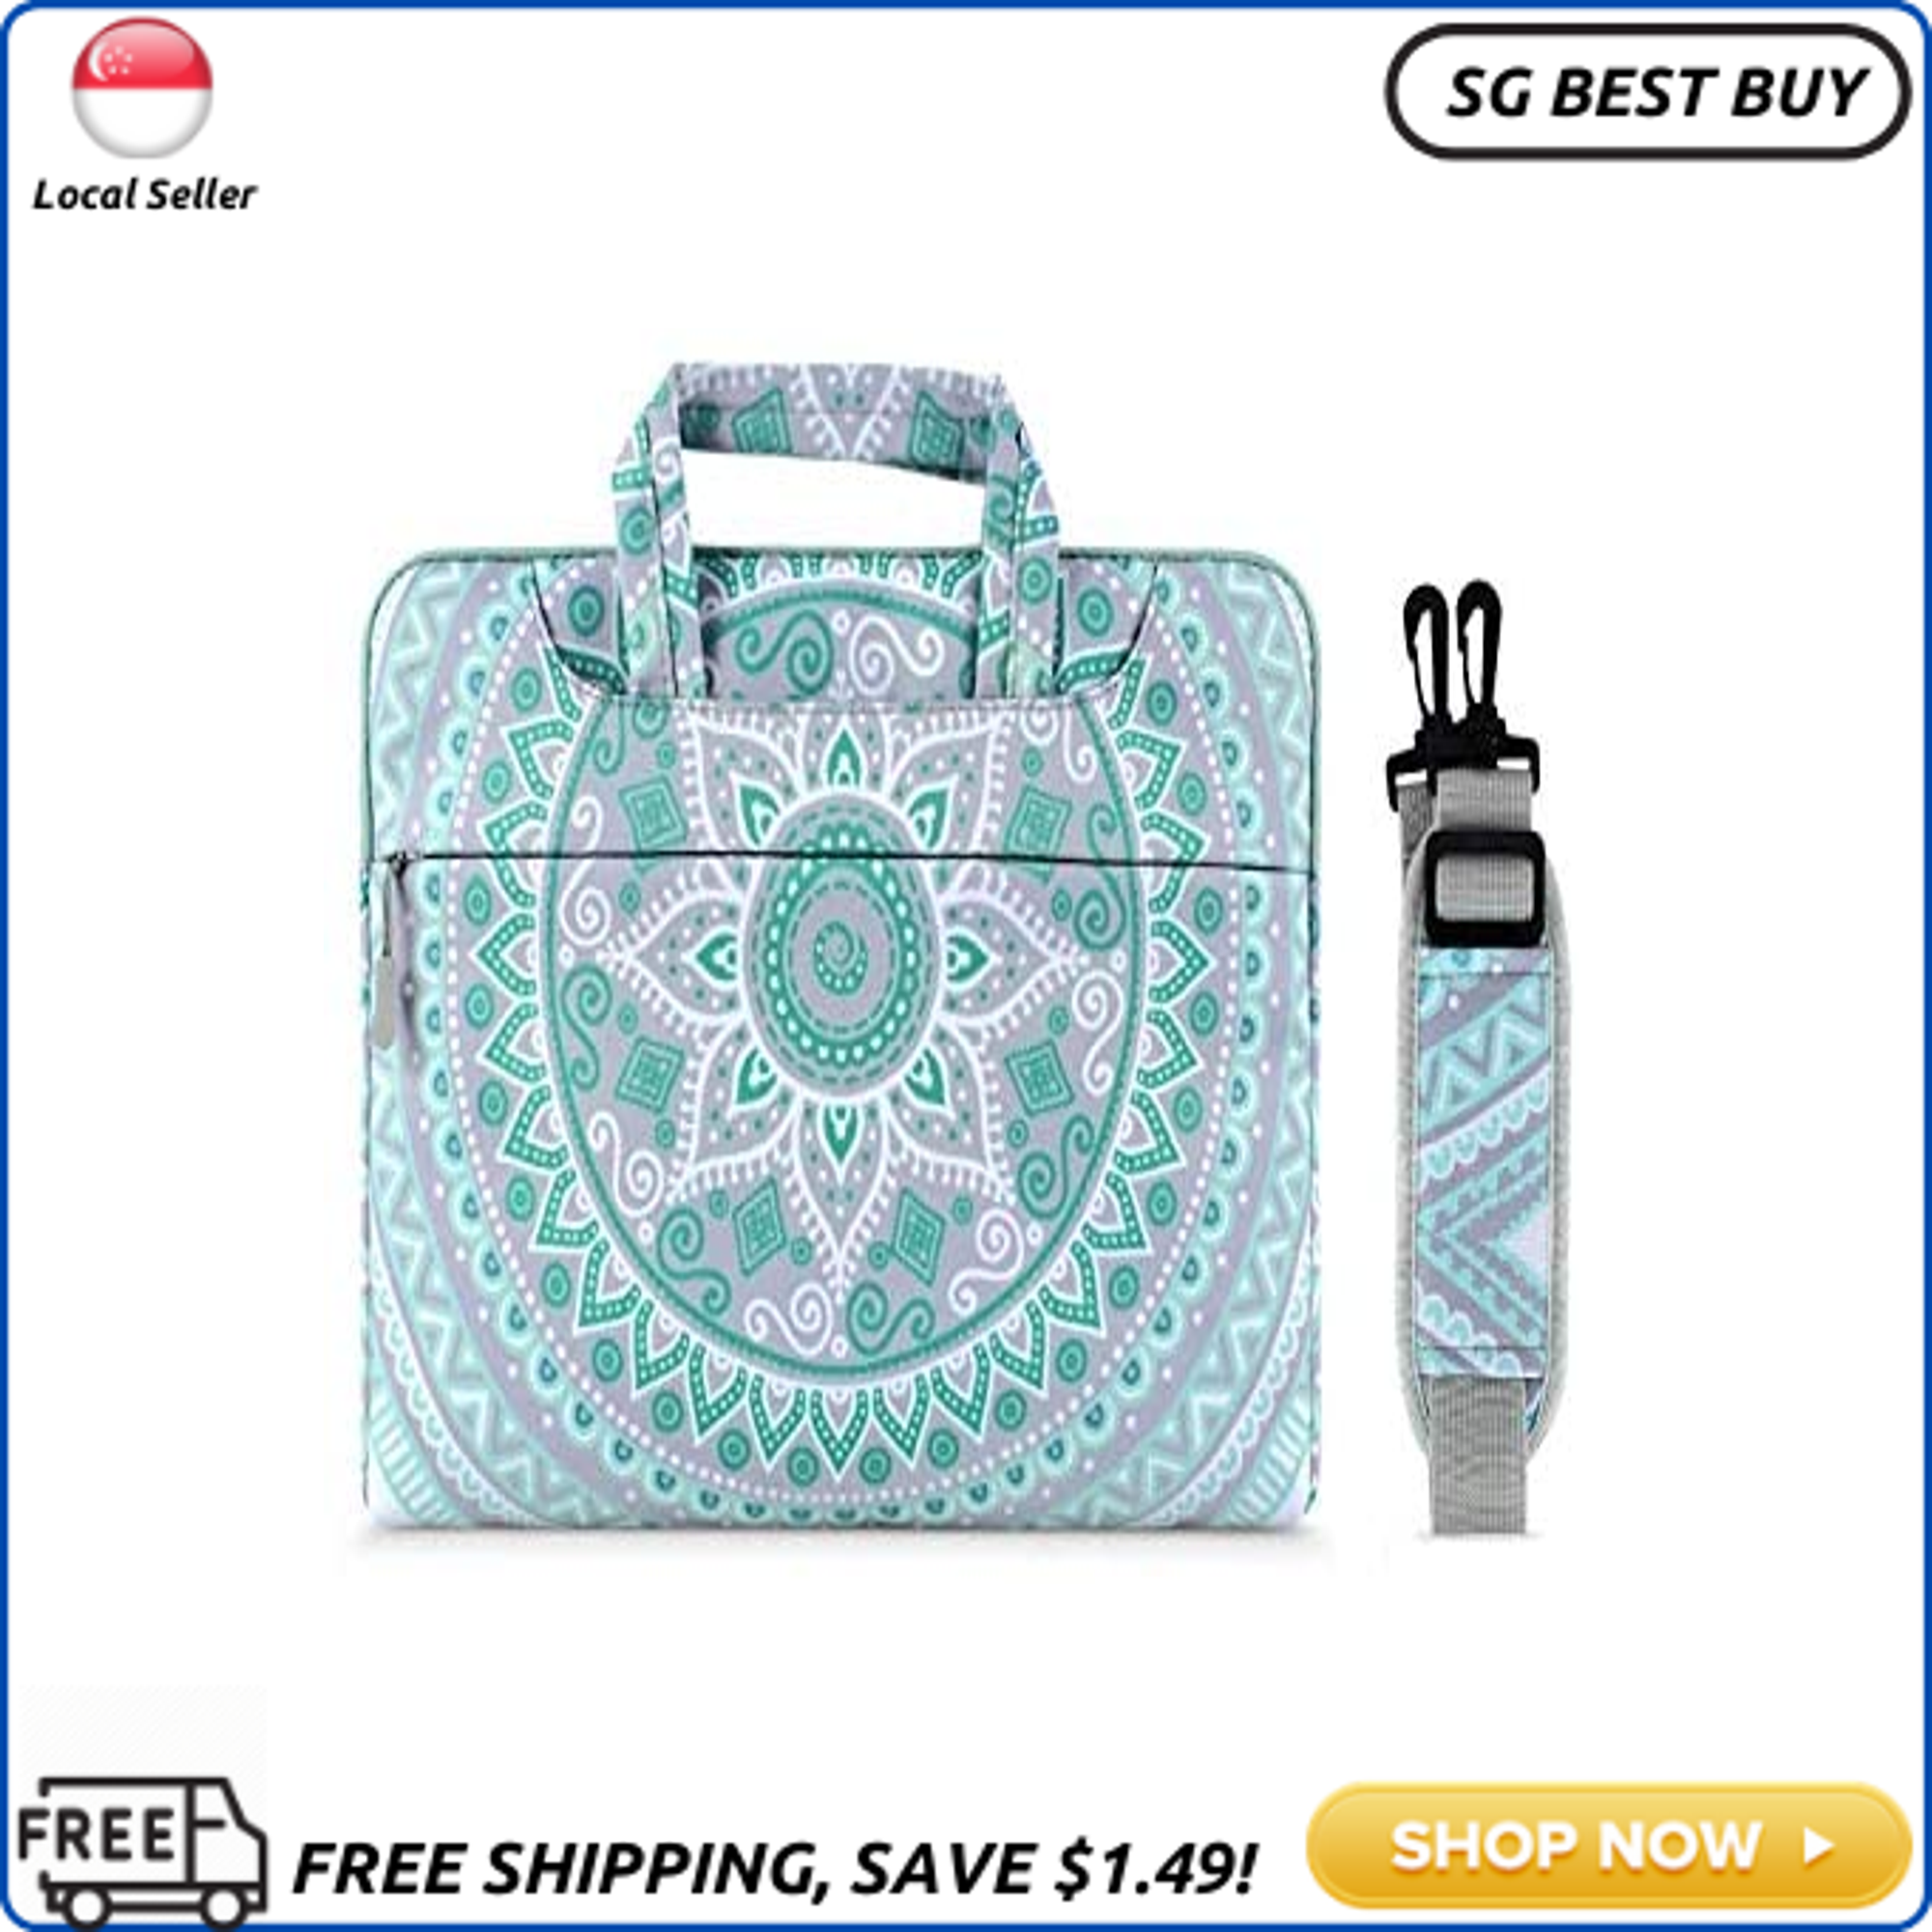 (SG SELLER) MOSISO Laptop Shoulder Bag Compatible with 13-13.3 inch MacBook Pro, MacBook Air, Notebook Computer, Canvas Mandala Pattern Protective Briefcase Carrying Handbag Sleeve Case Cover, Mint Green&Blue